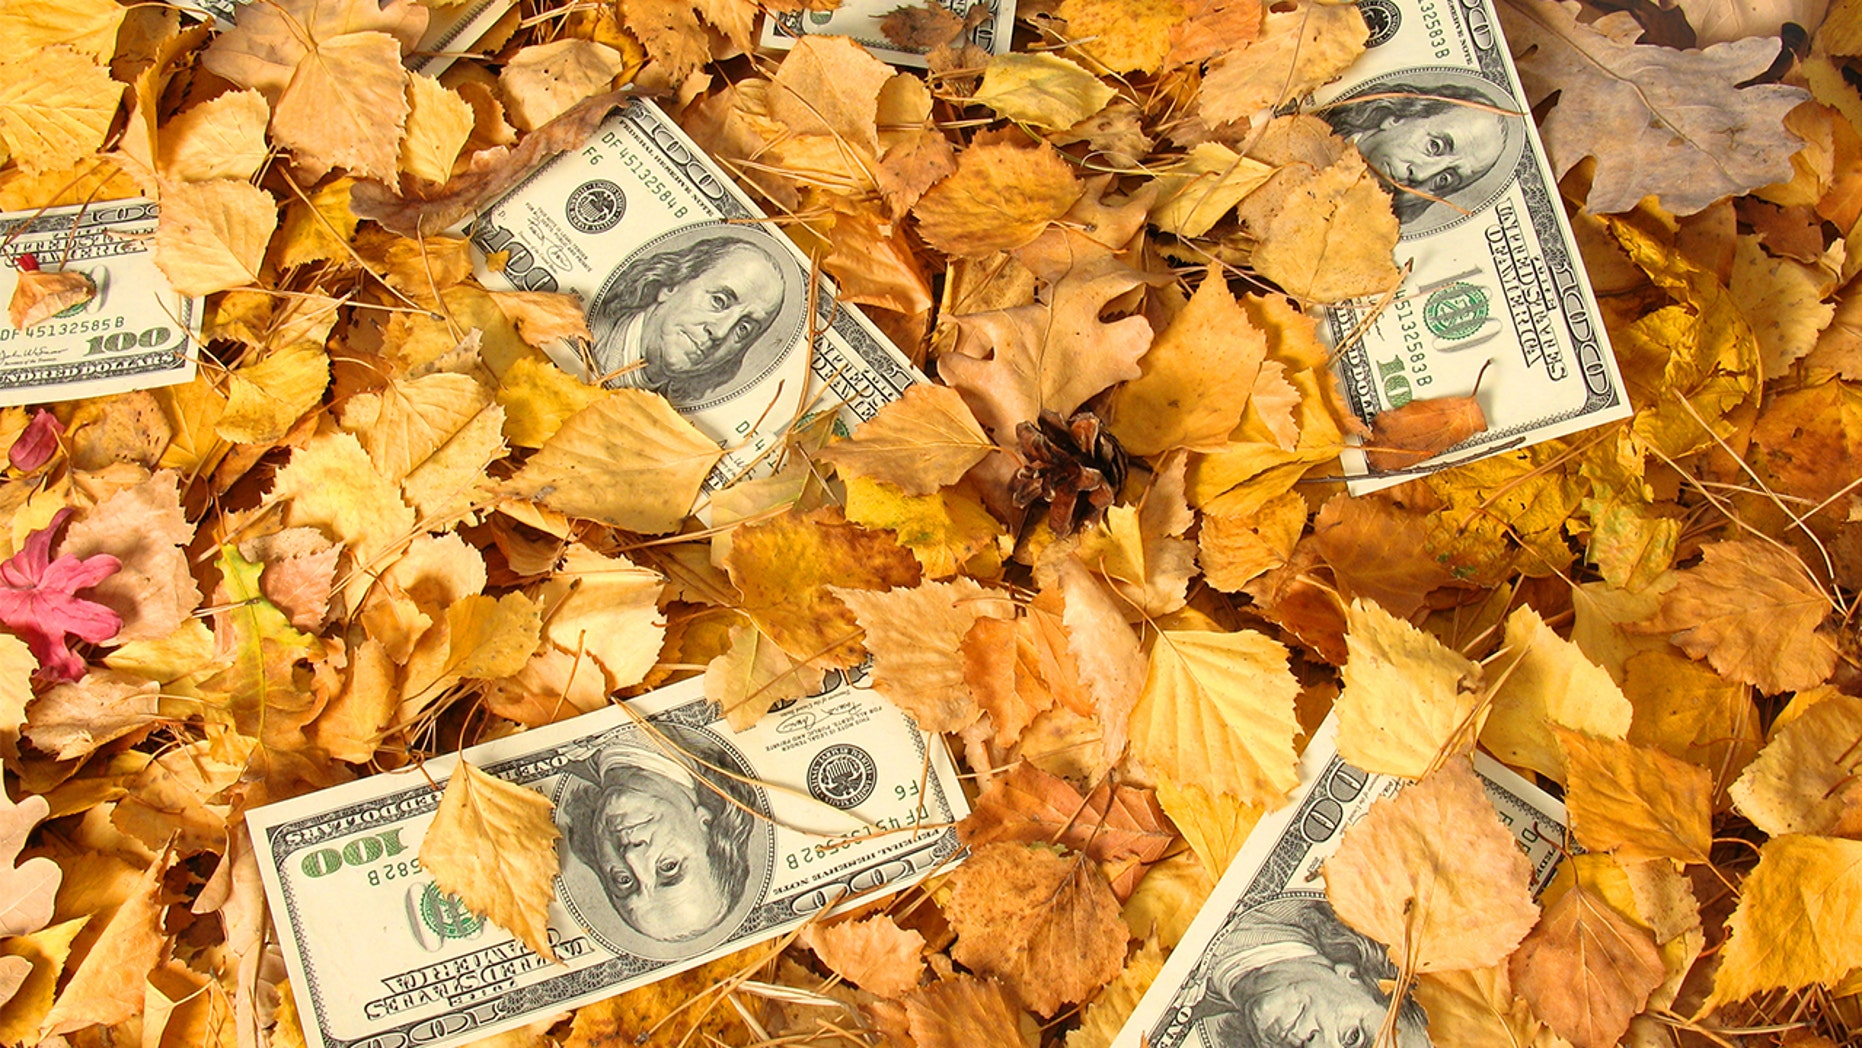 Perhaps money really does grow on trees.